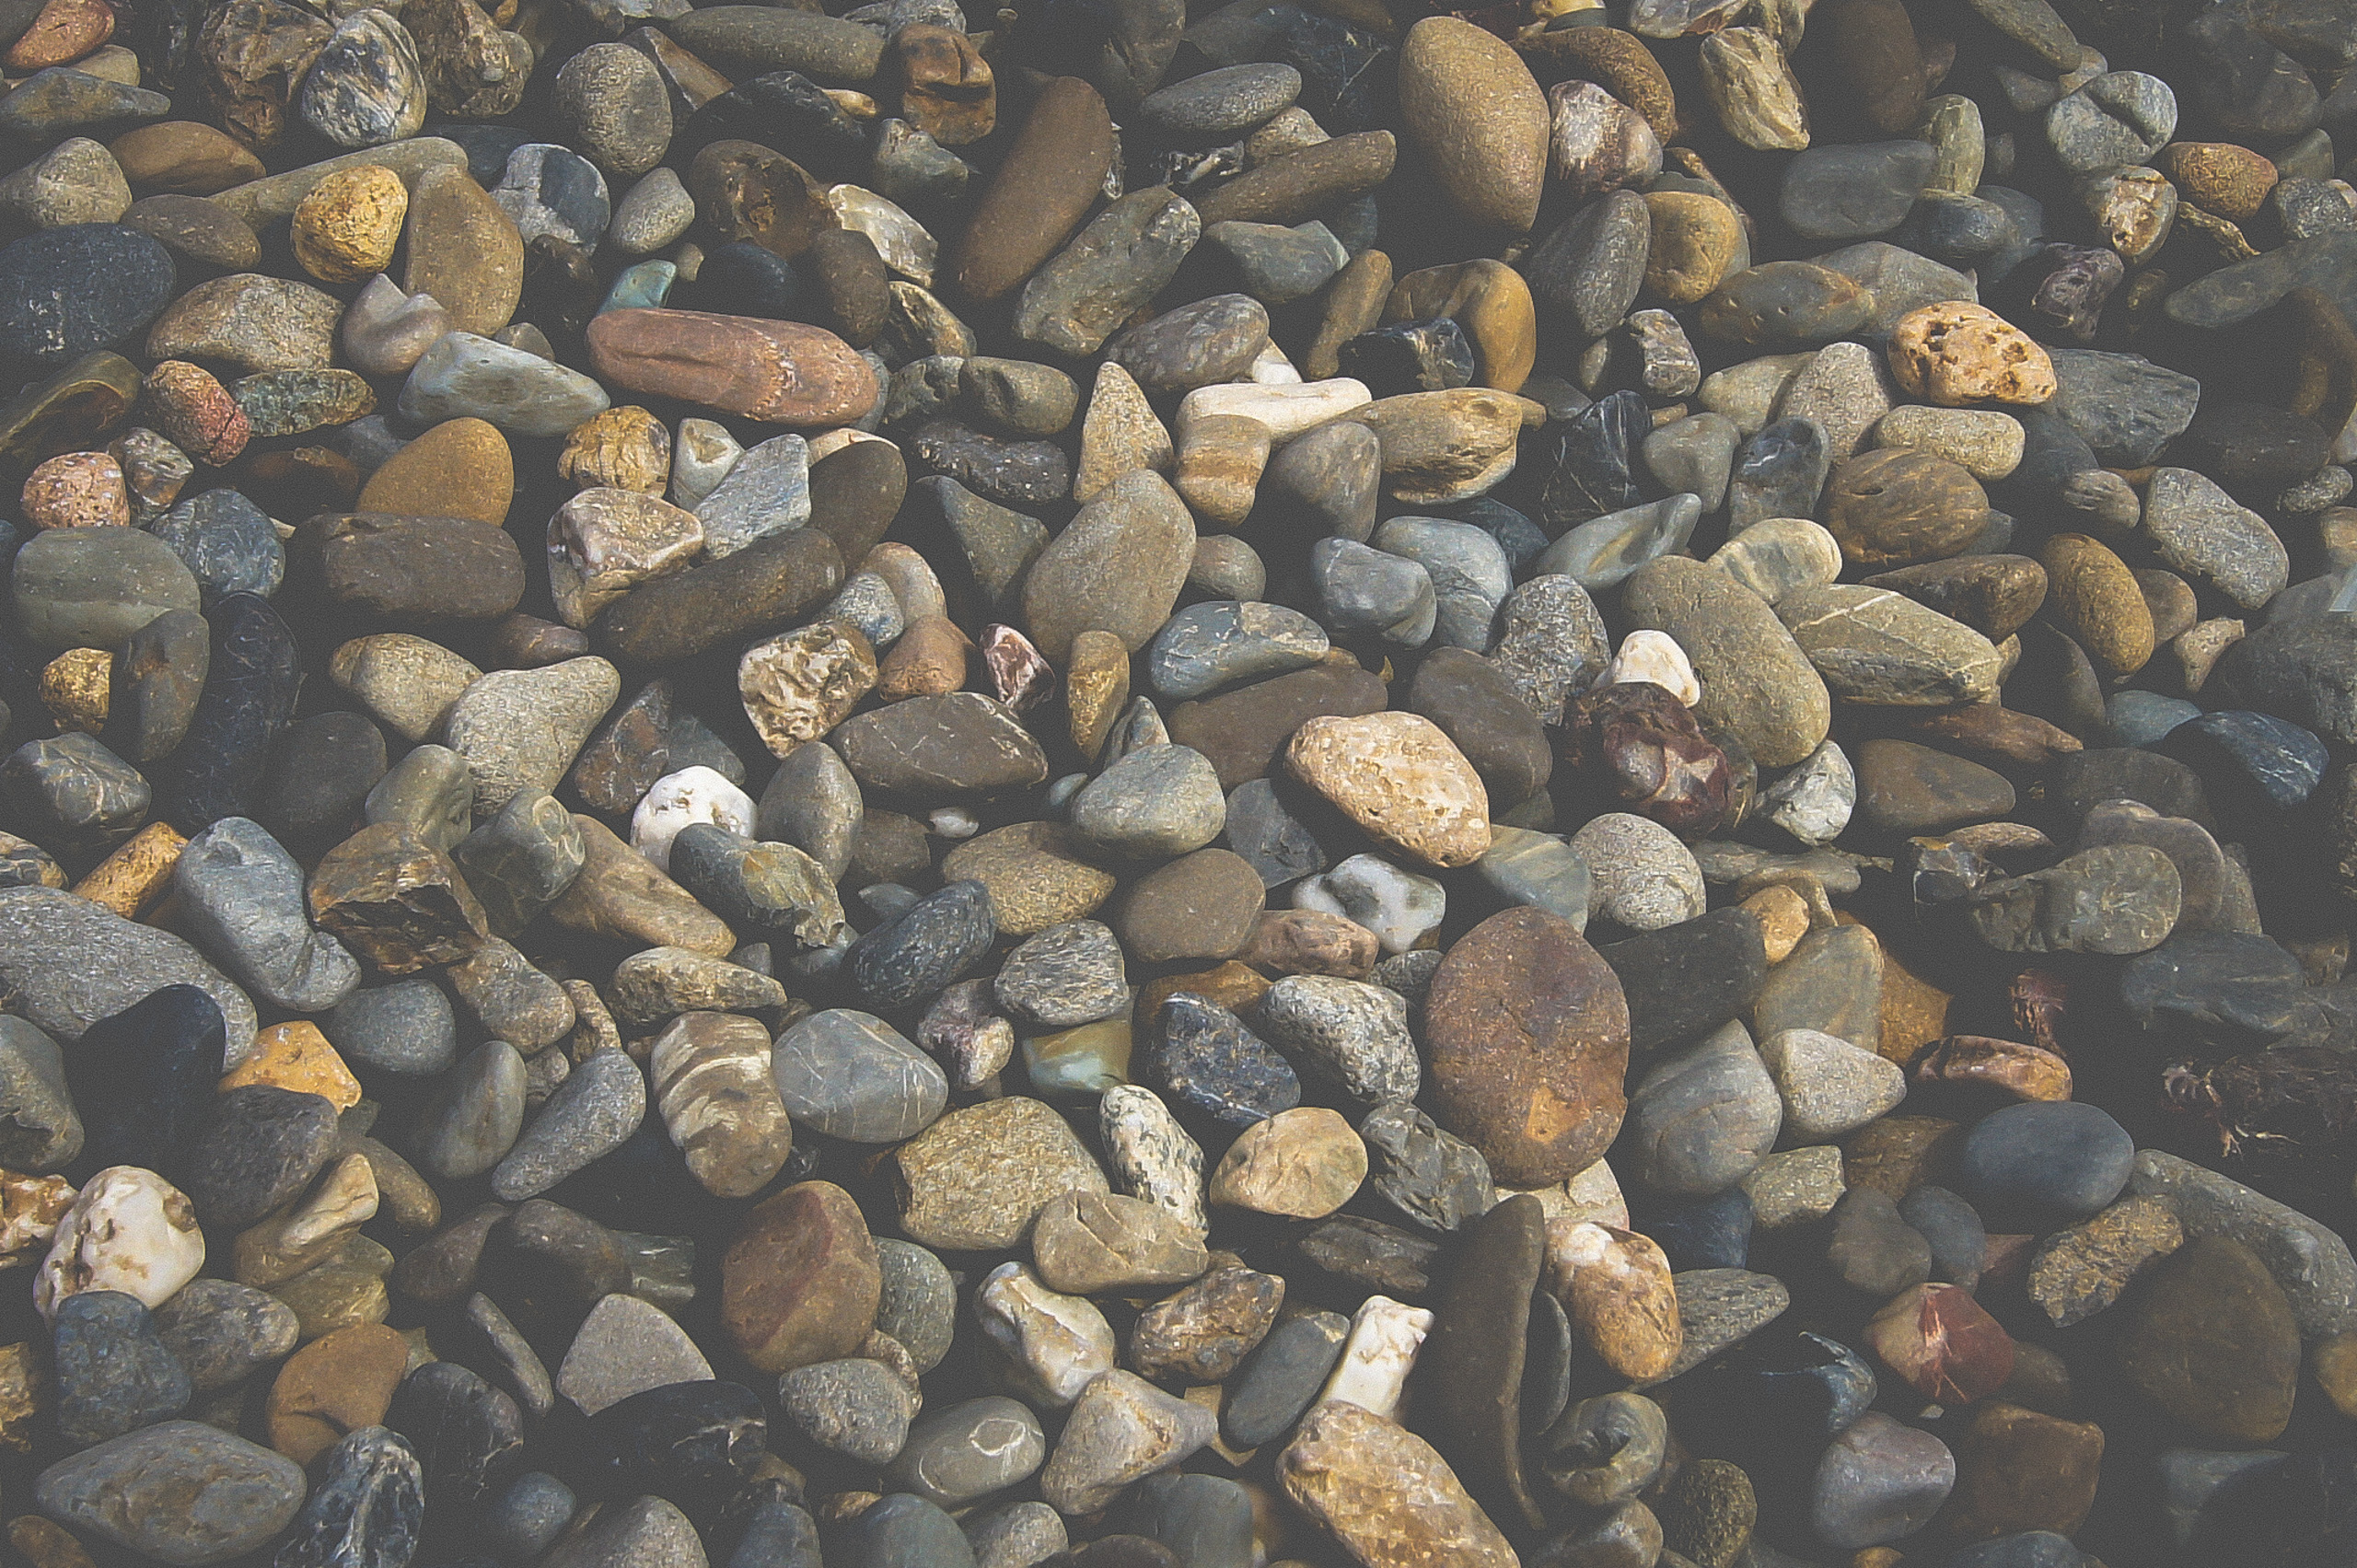 Grey River Pebble 20mm Closeup Landscape Supply Photography